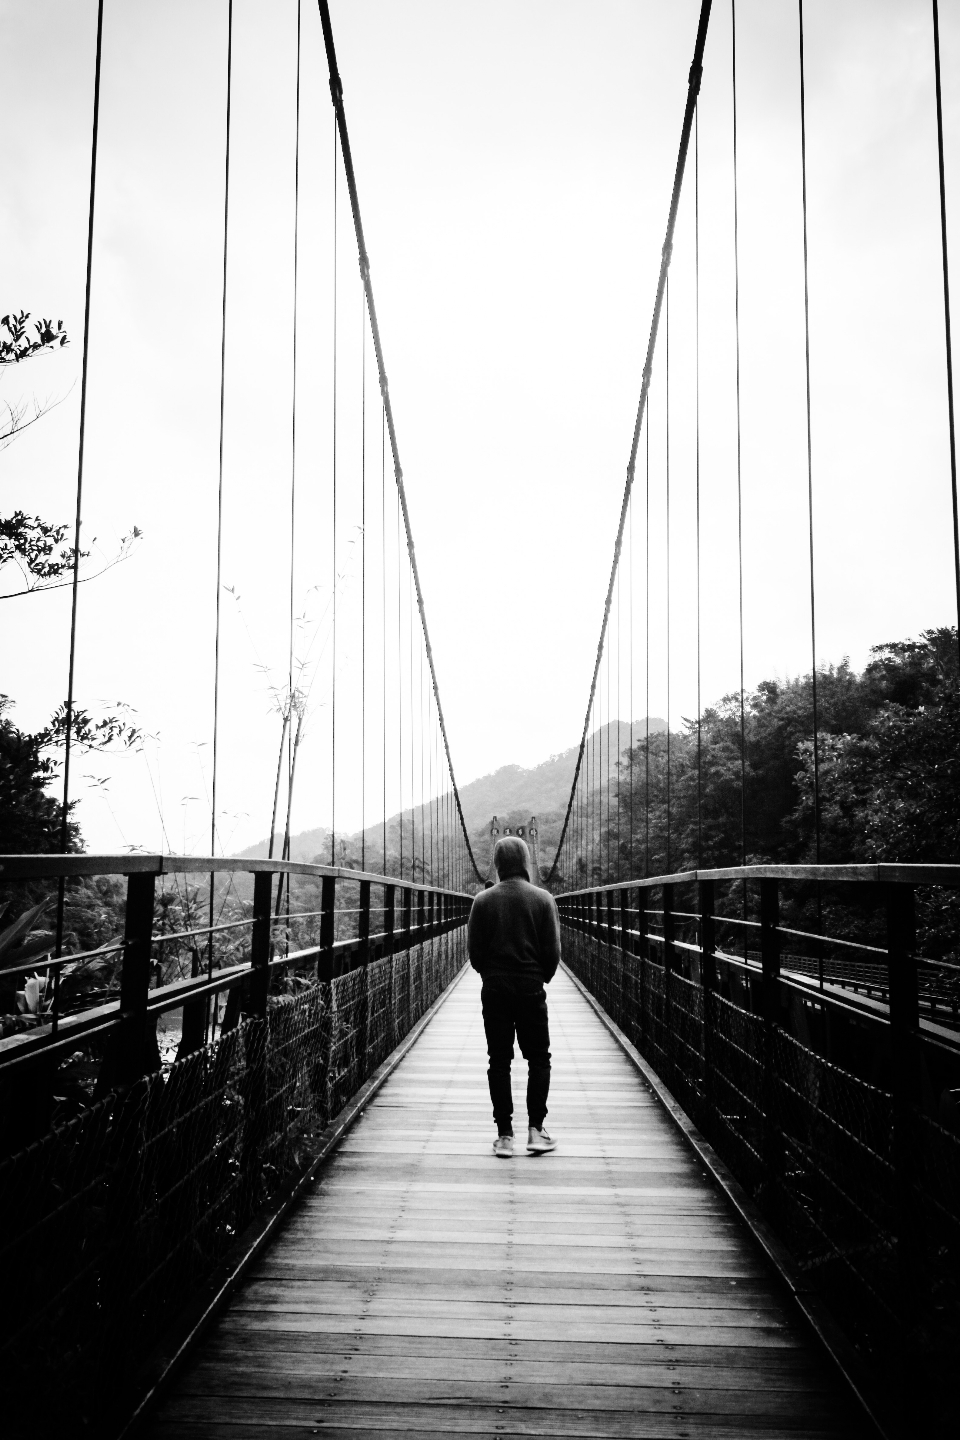 bridge walking stocksnap person io hoodie river downloads travel adventure